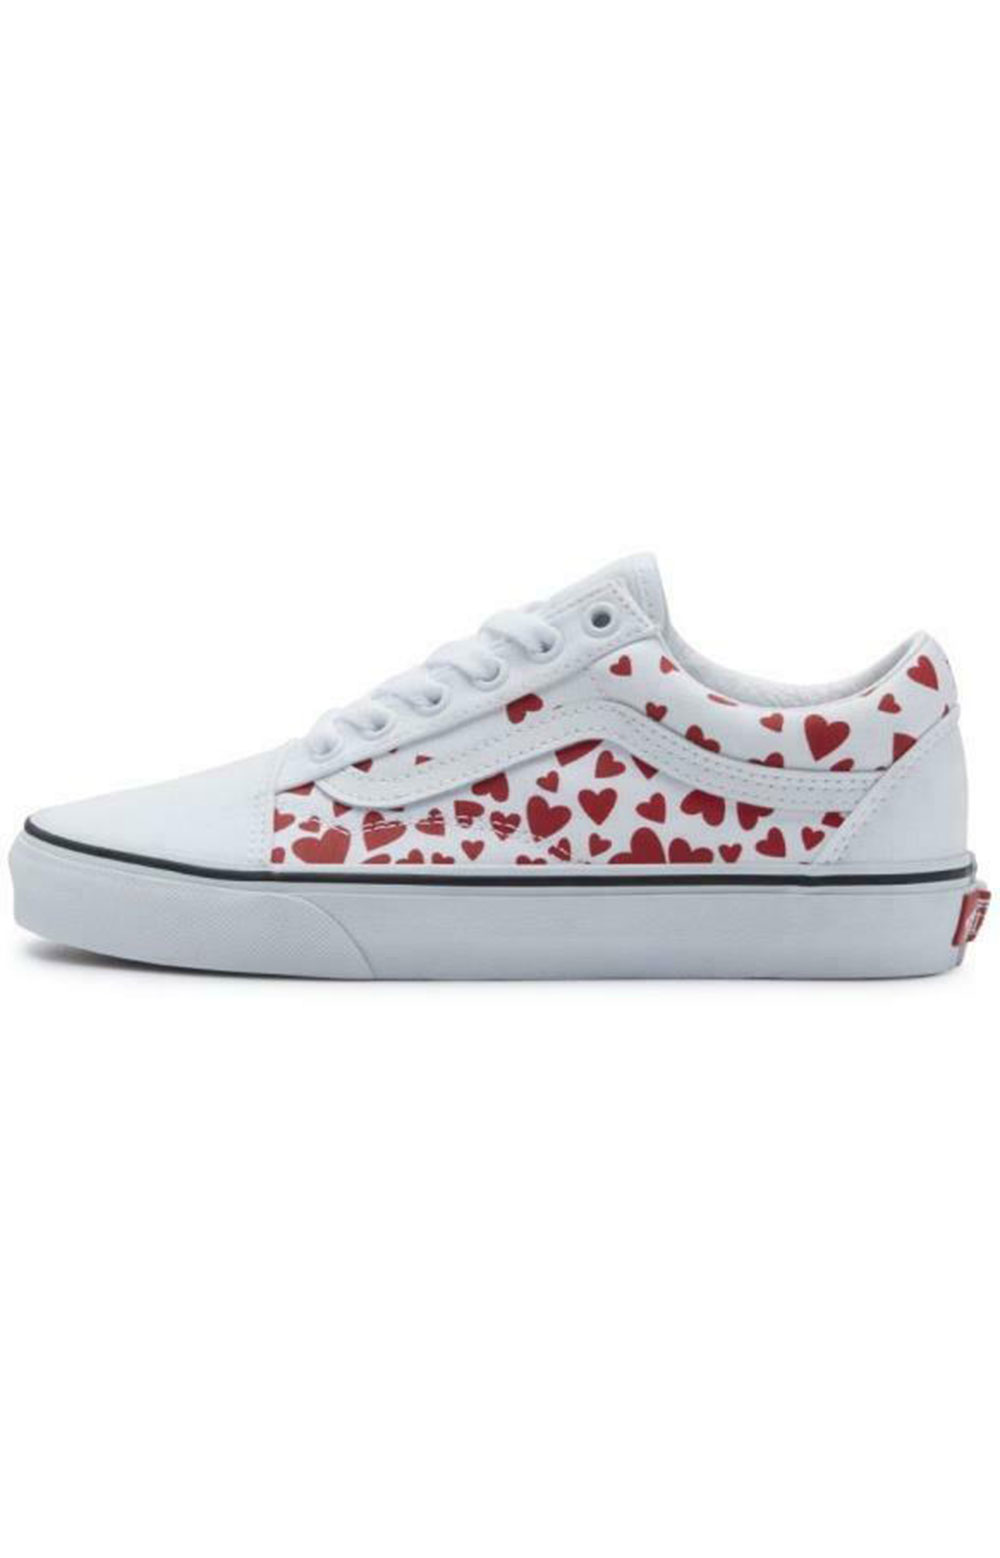 (WKT4S0) Valentines Hearts Old Skool Shoes - White 3